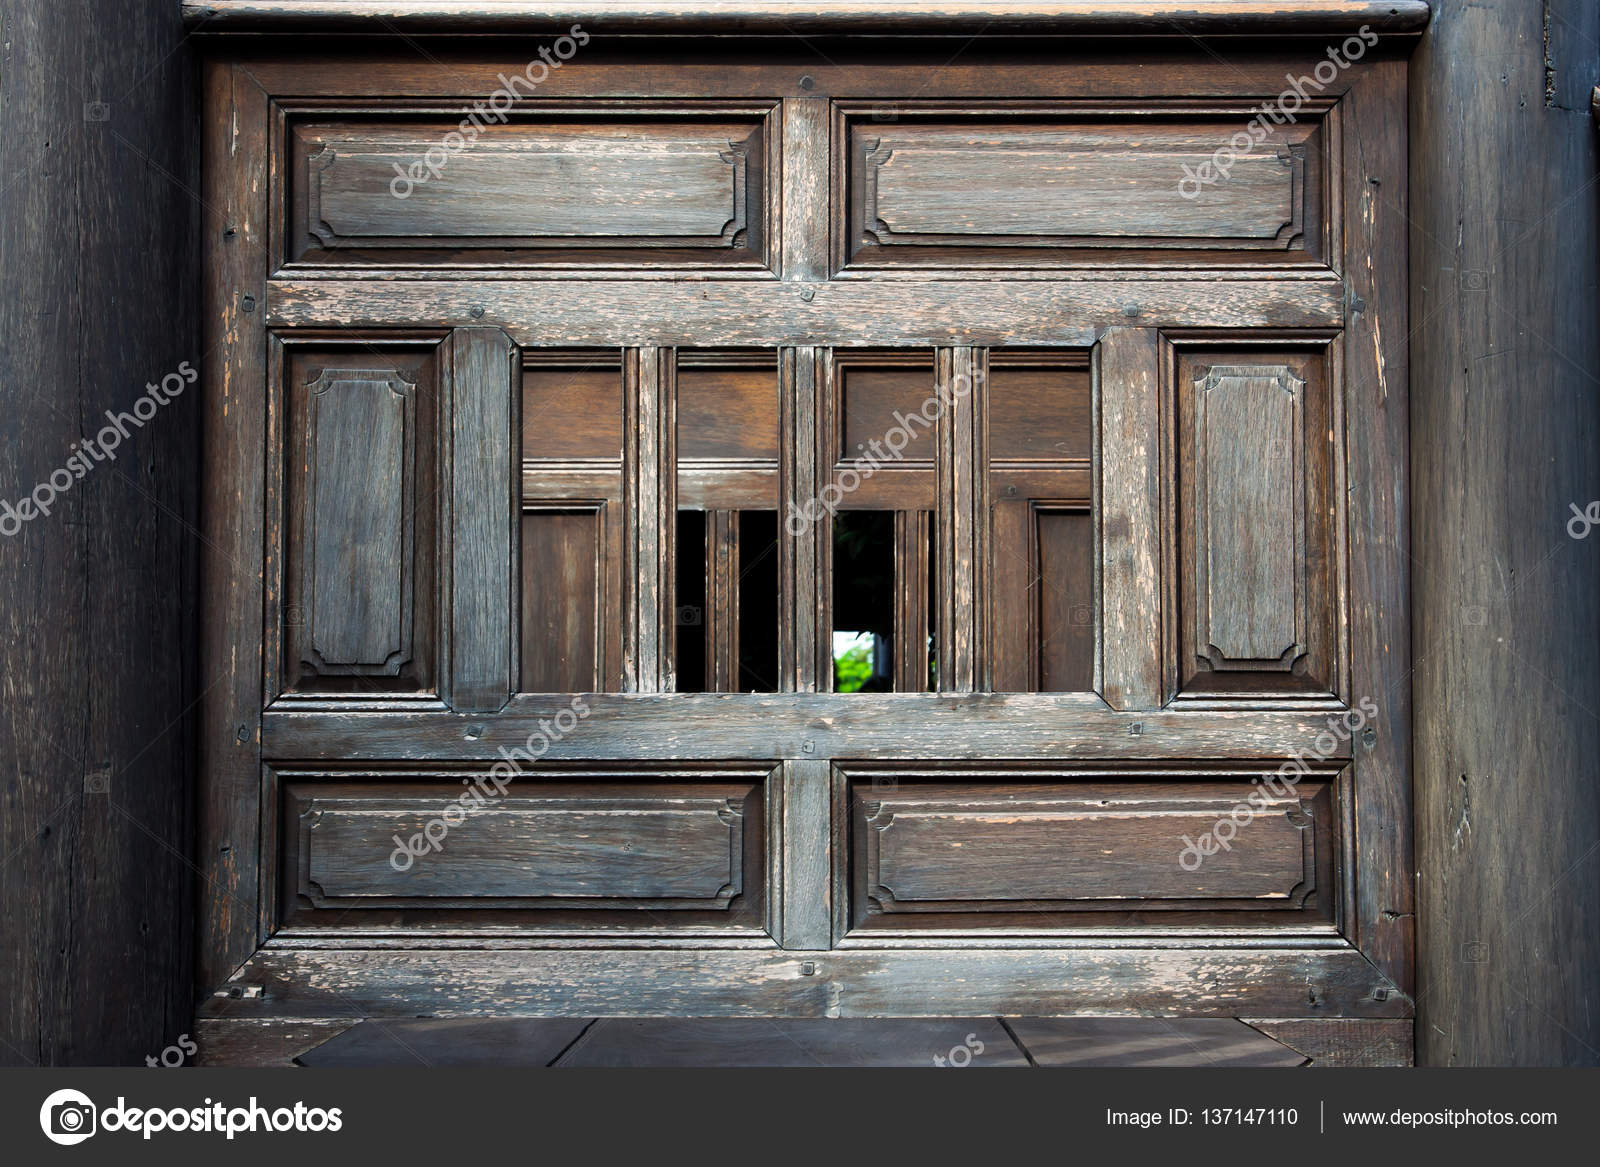 Old wooden window stock photo vkafitigmail 137147110 windows made of old wood old wood textures backgrounds abstract backgrounds photo by vkafitigmail freerunsca Images